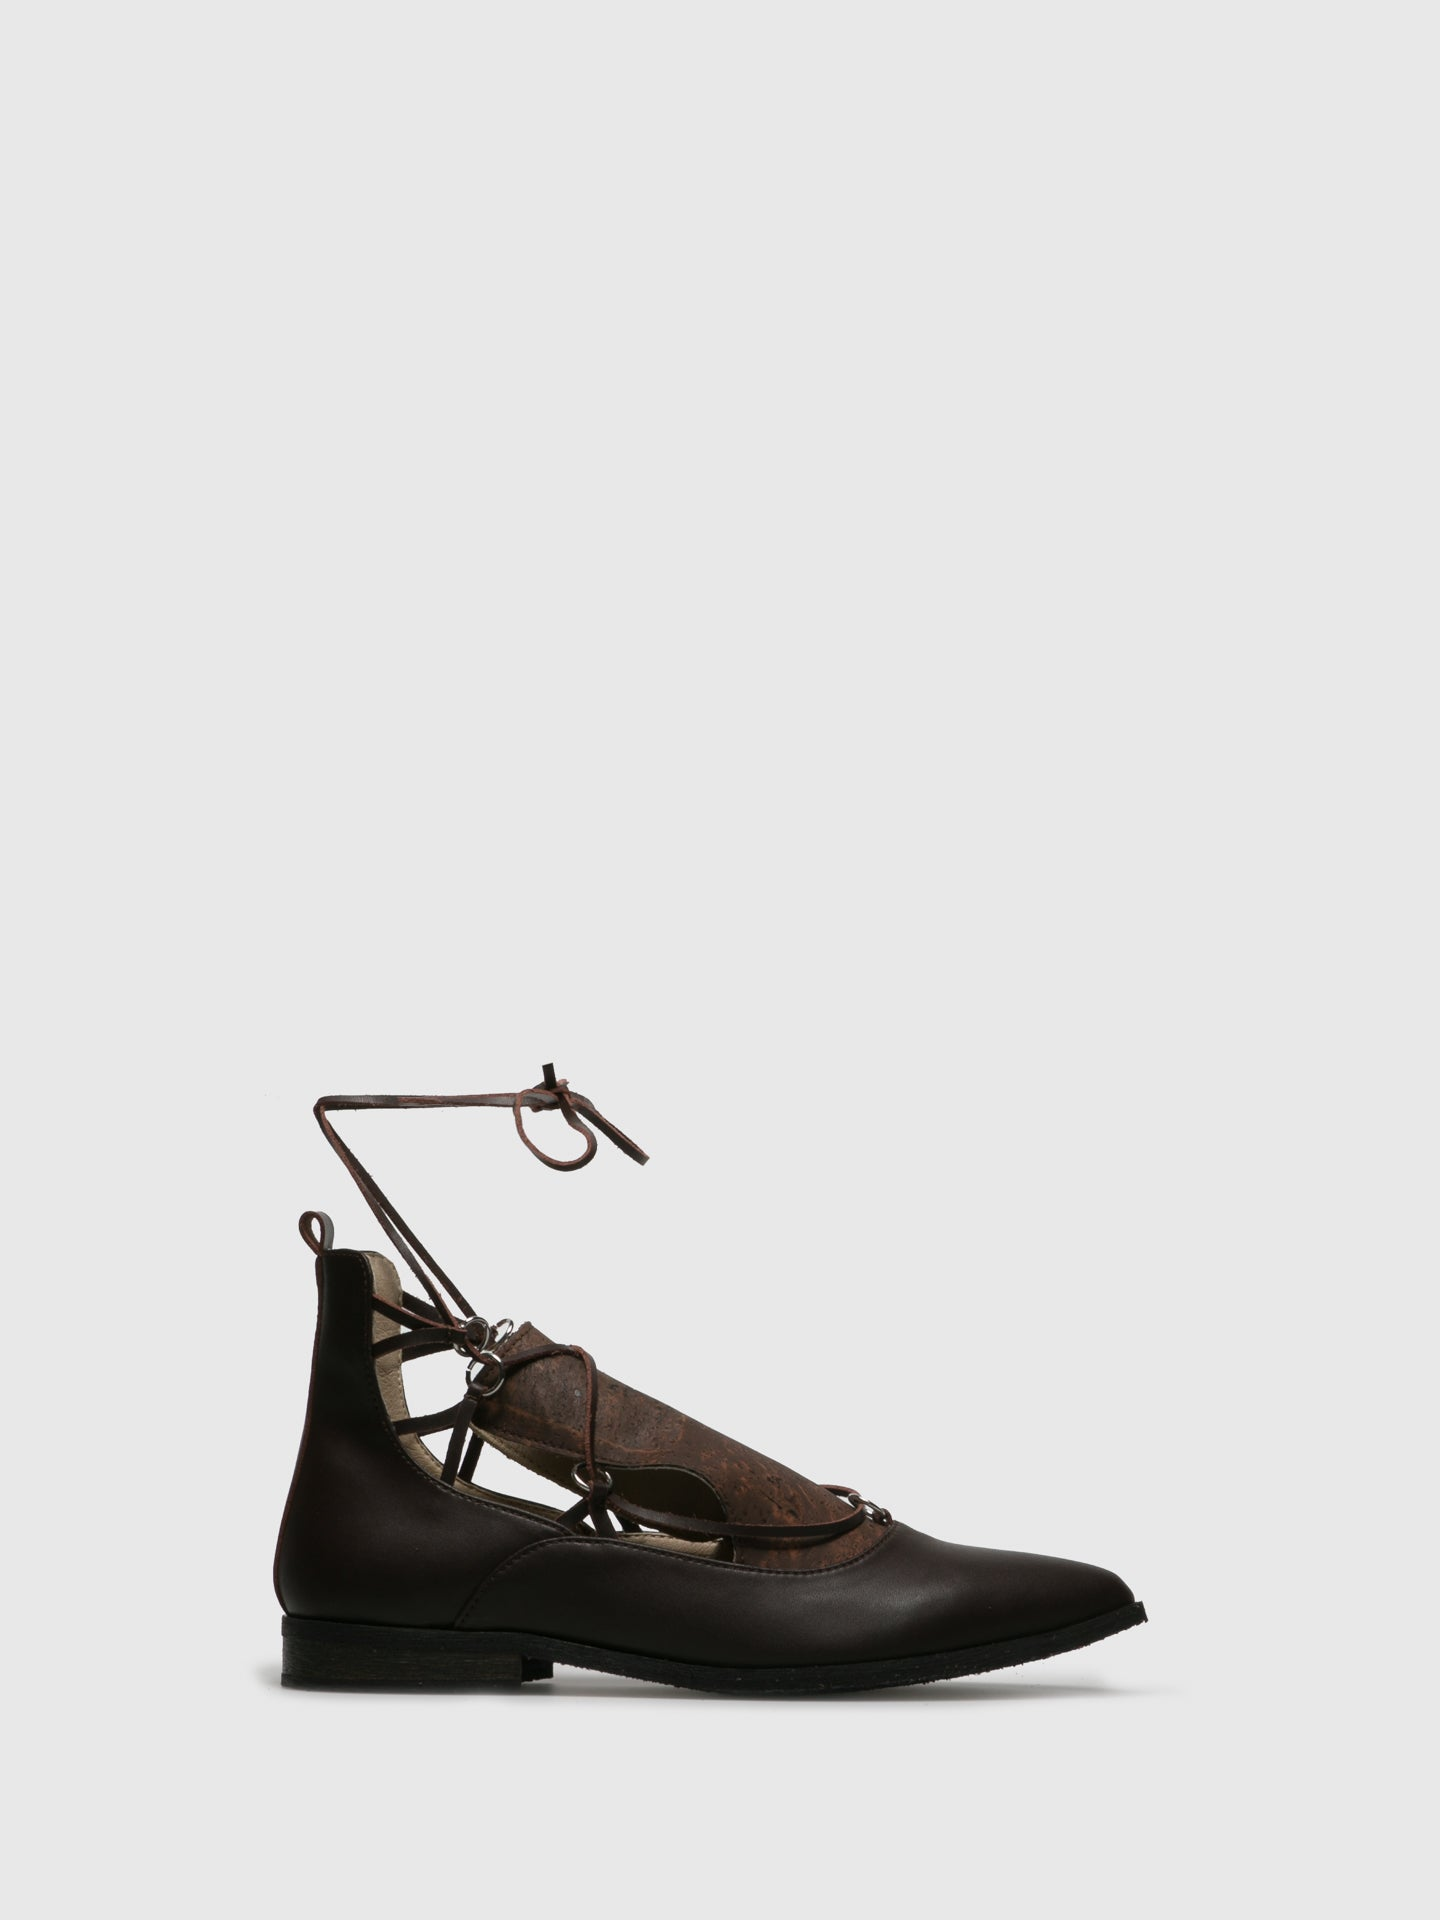 Marita Moreno Brown Pointed Toe Shoes